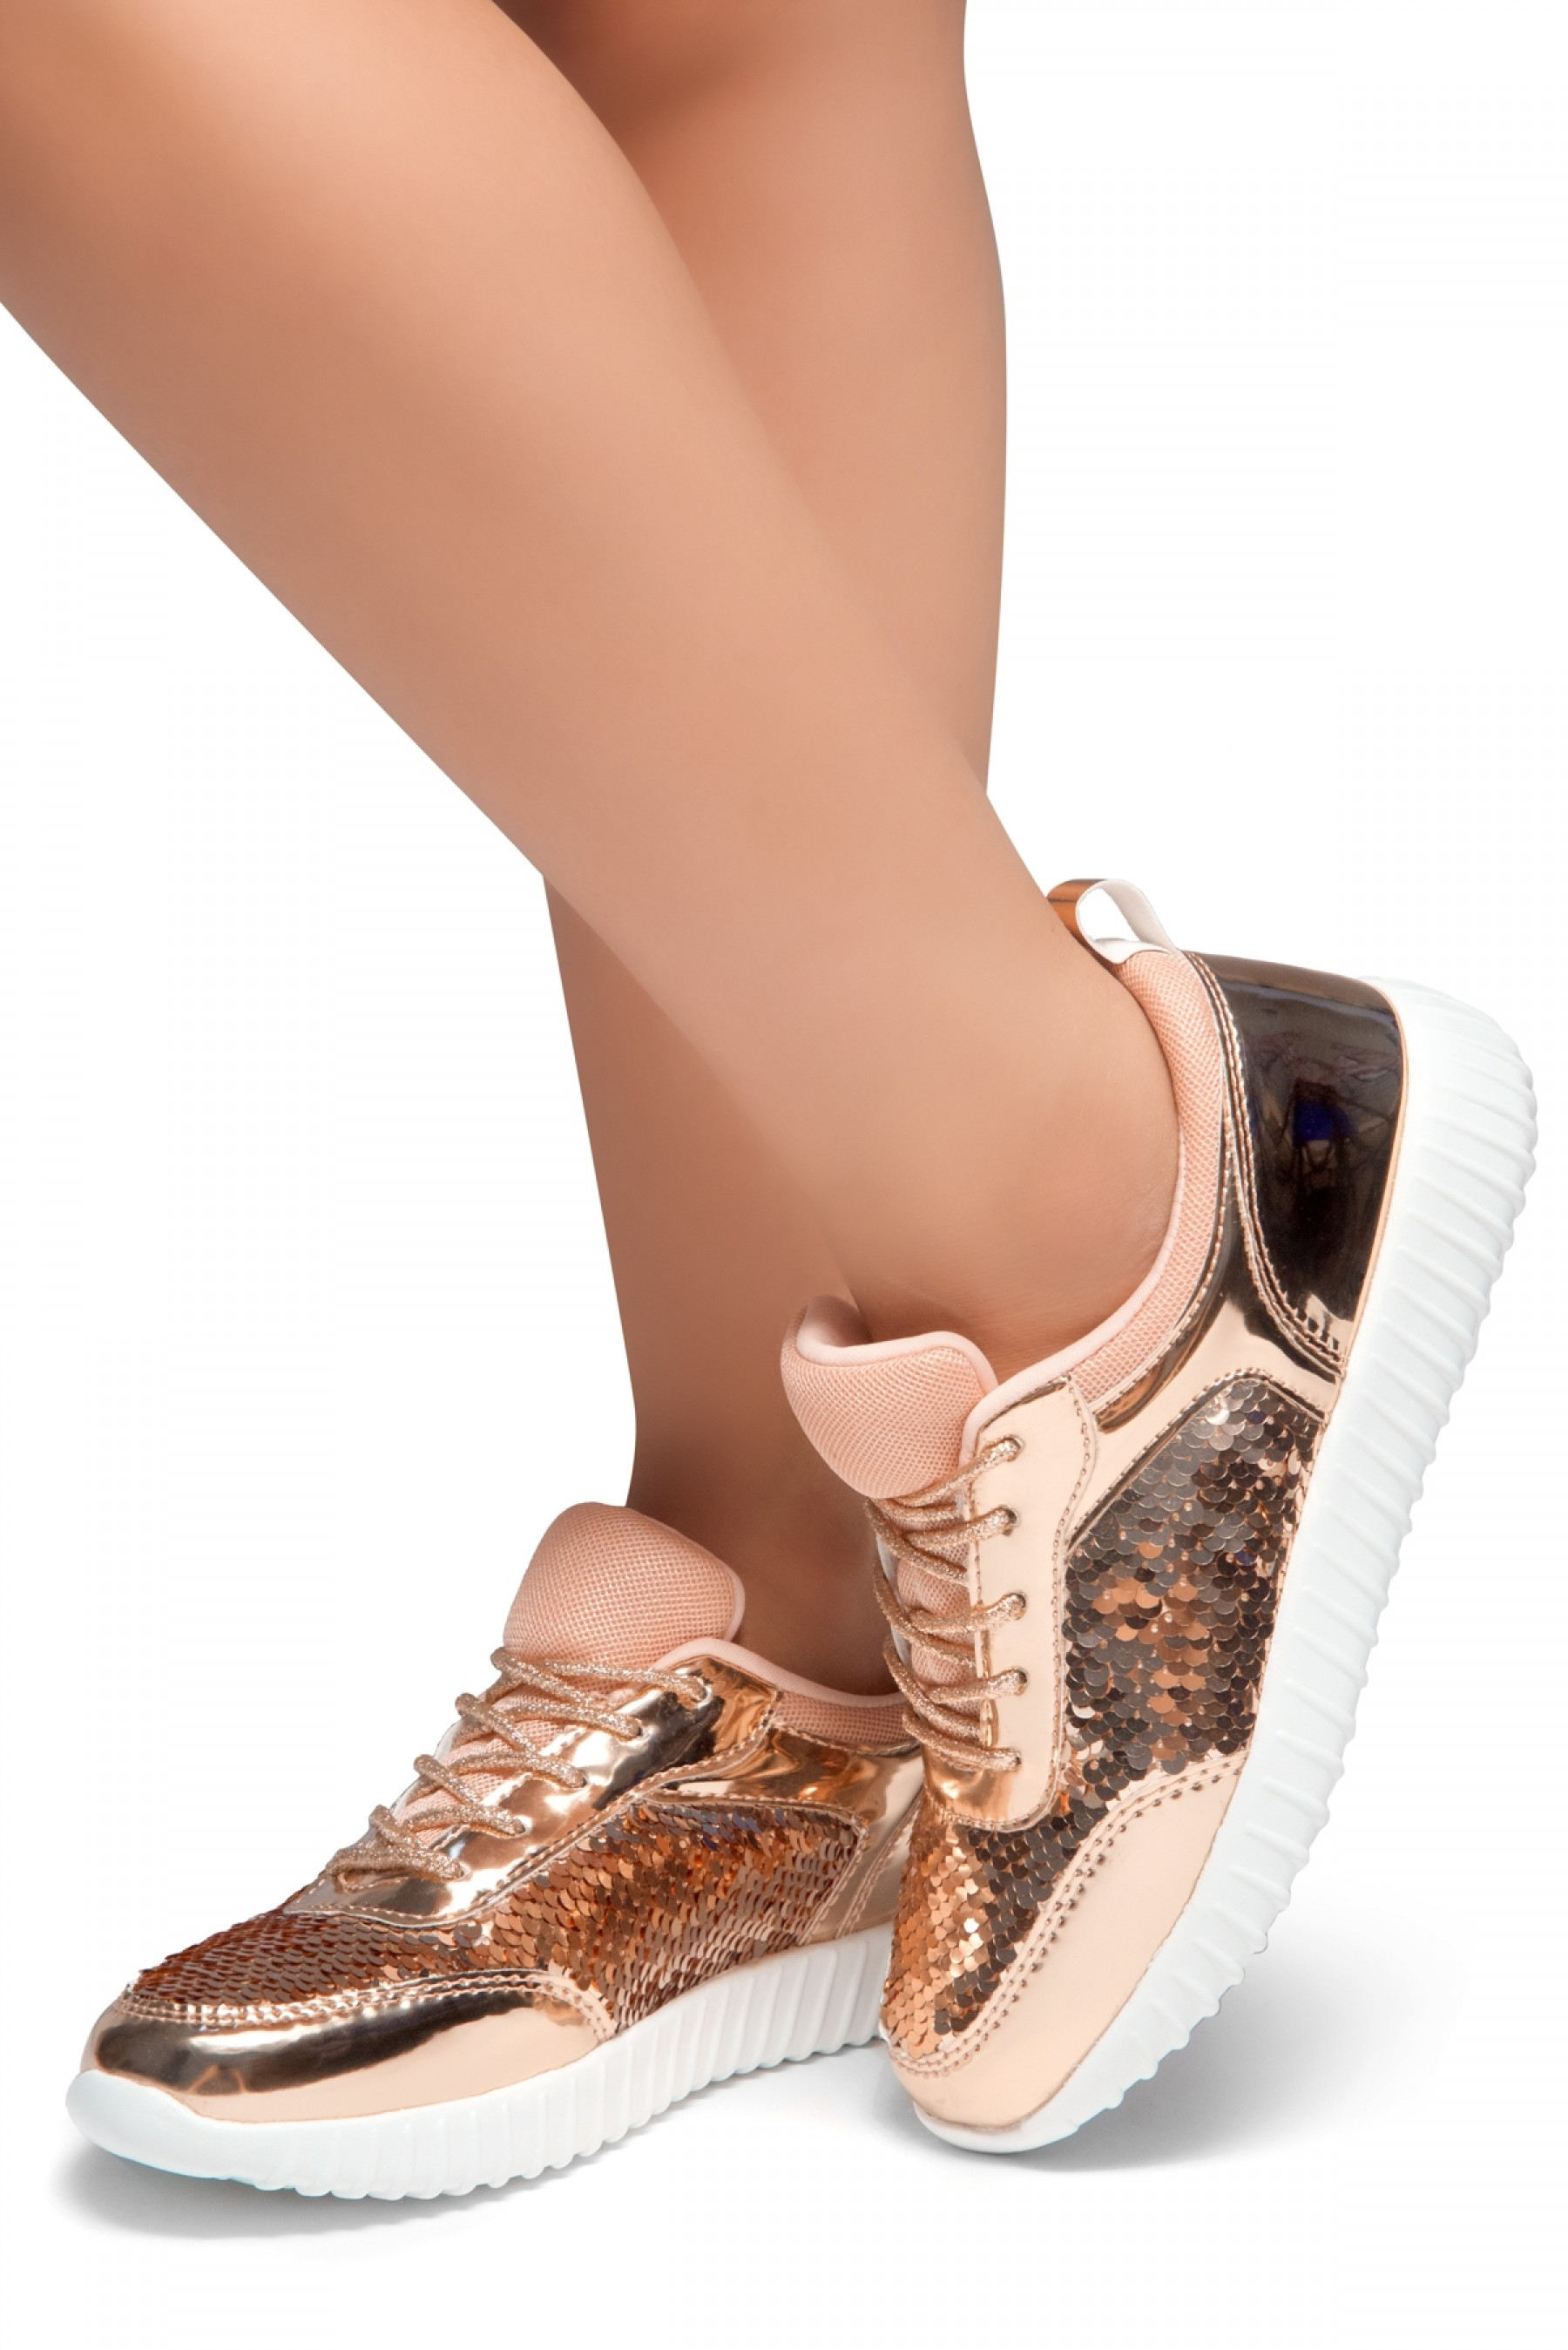 HerStyle TULULA-Sparkling Sequins Sneaker With Lace Upper (RoseGold/RoseGold)